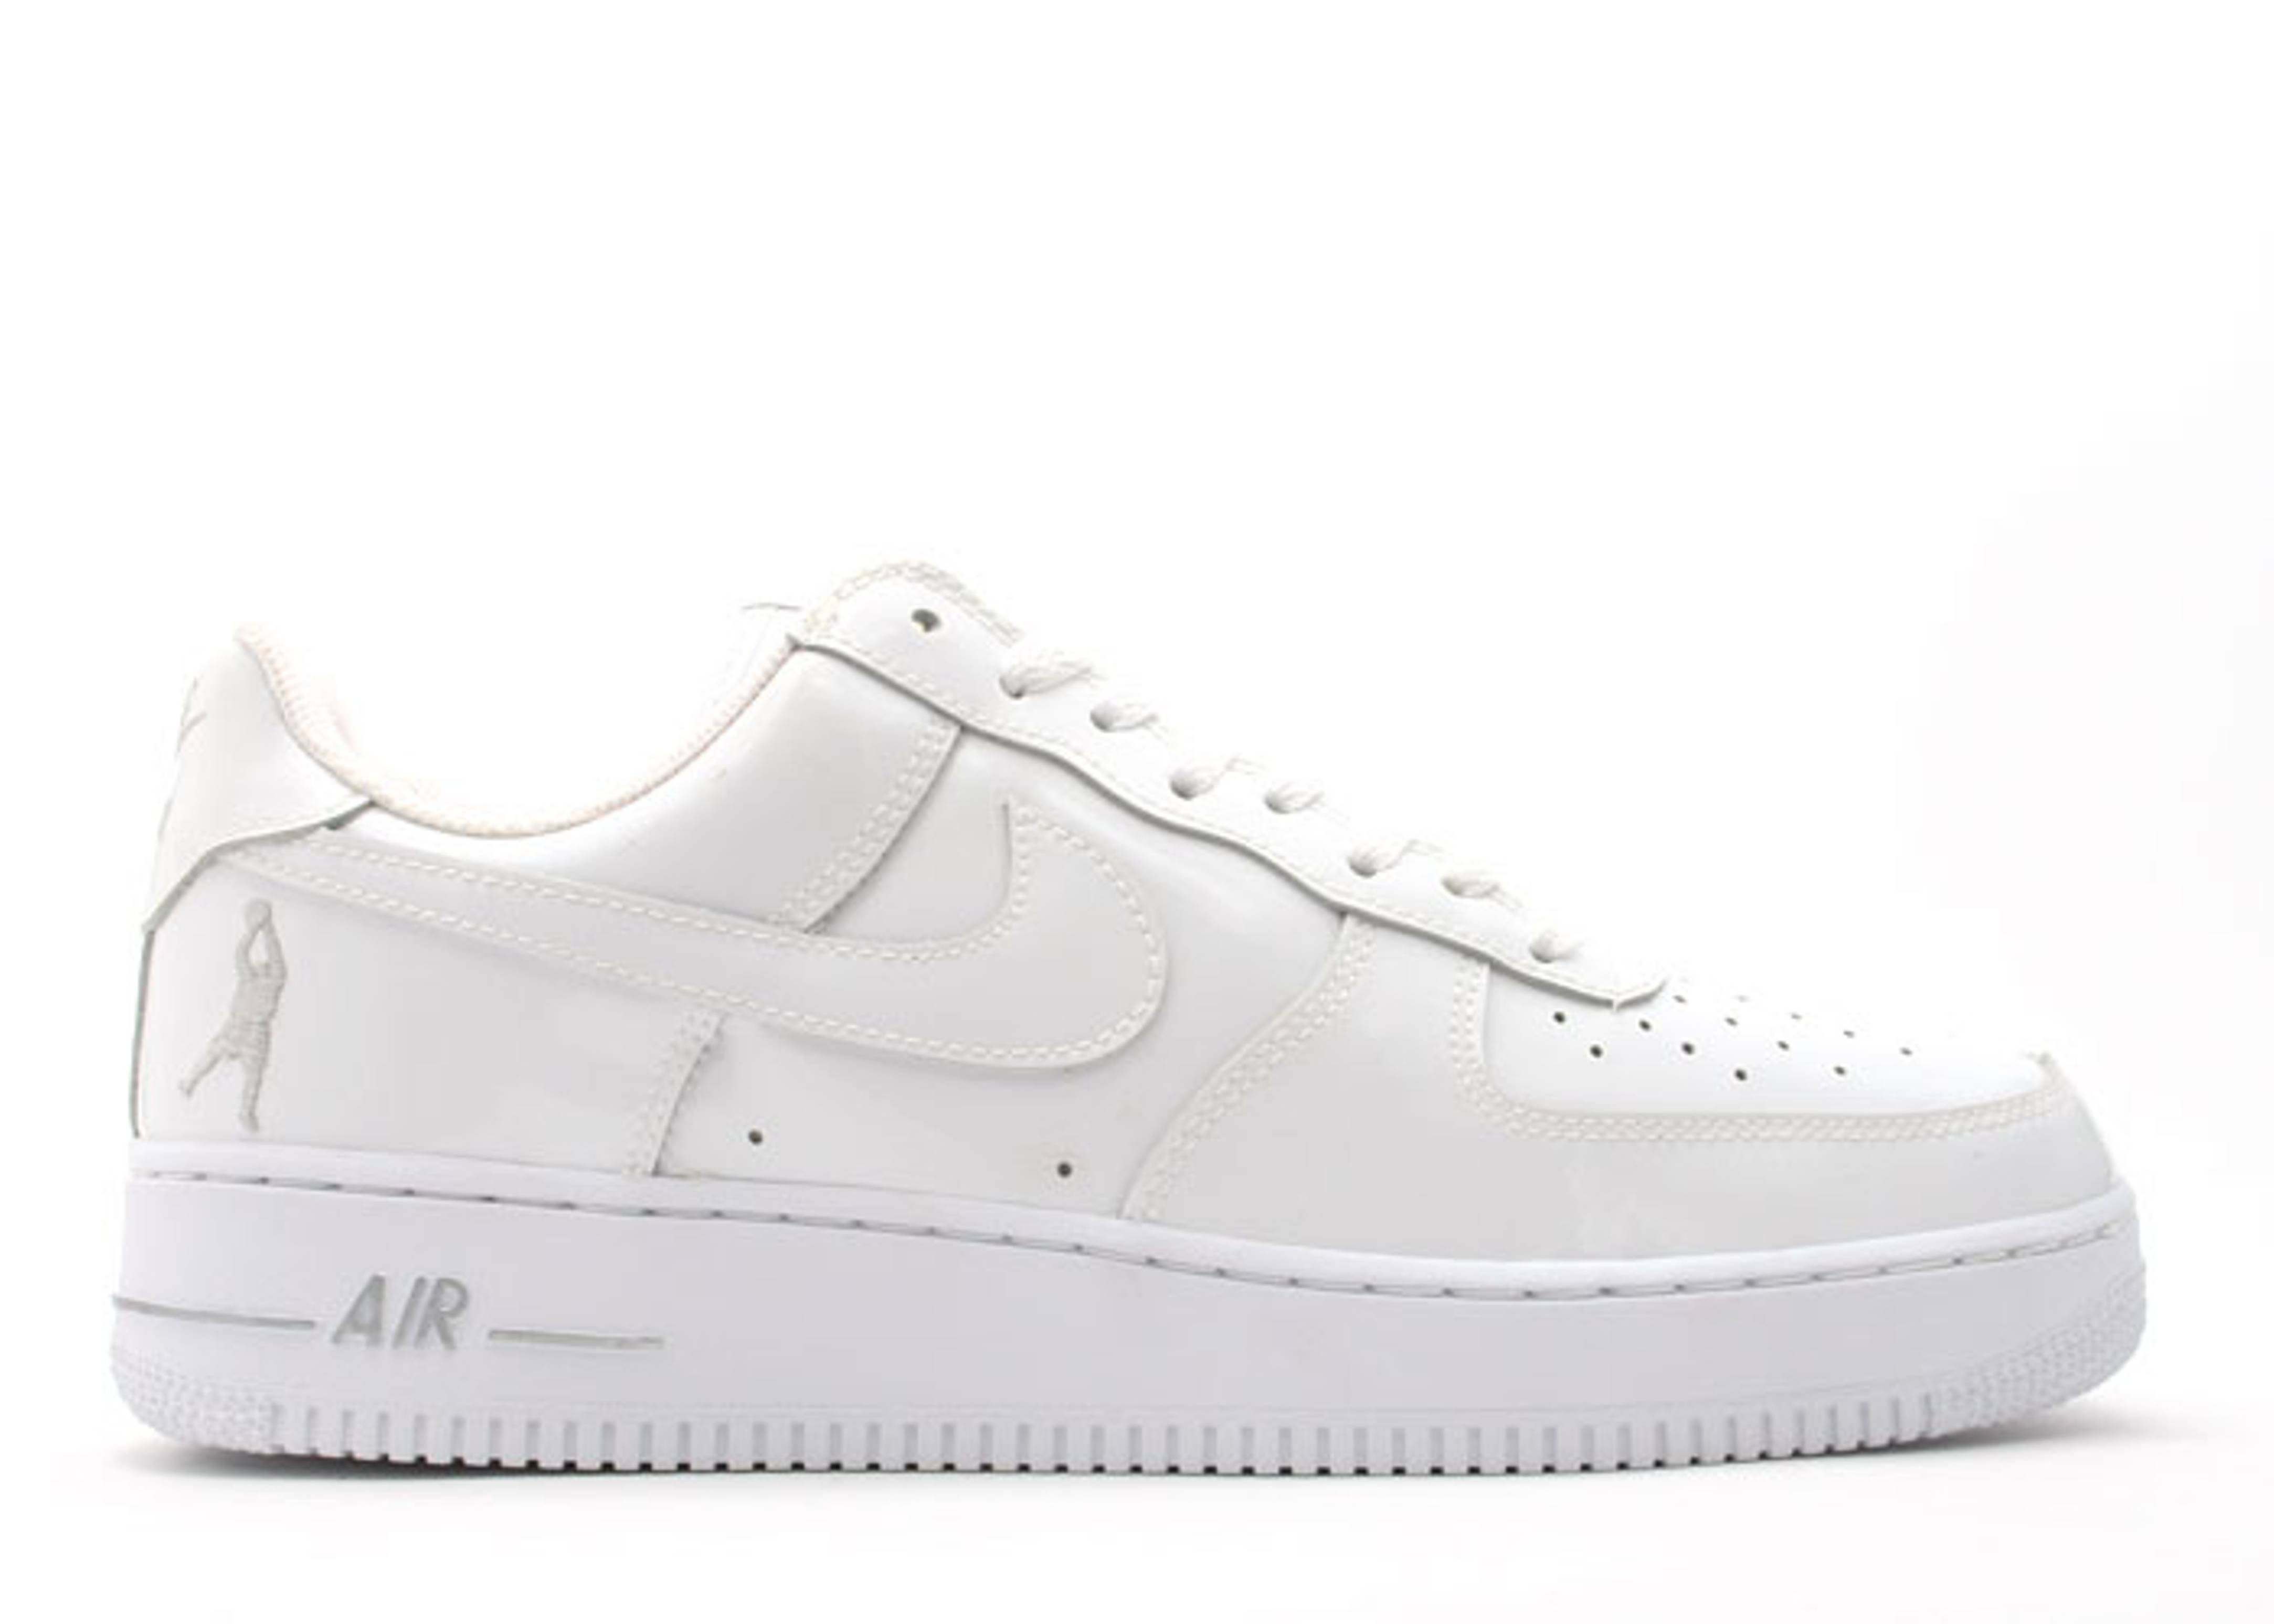 air force 1 sheed low white white metallic silver. Black Bedroom Furniture Sets. Home Design Ideas